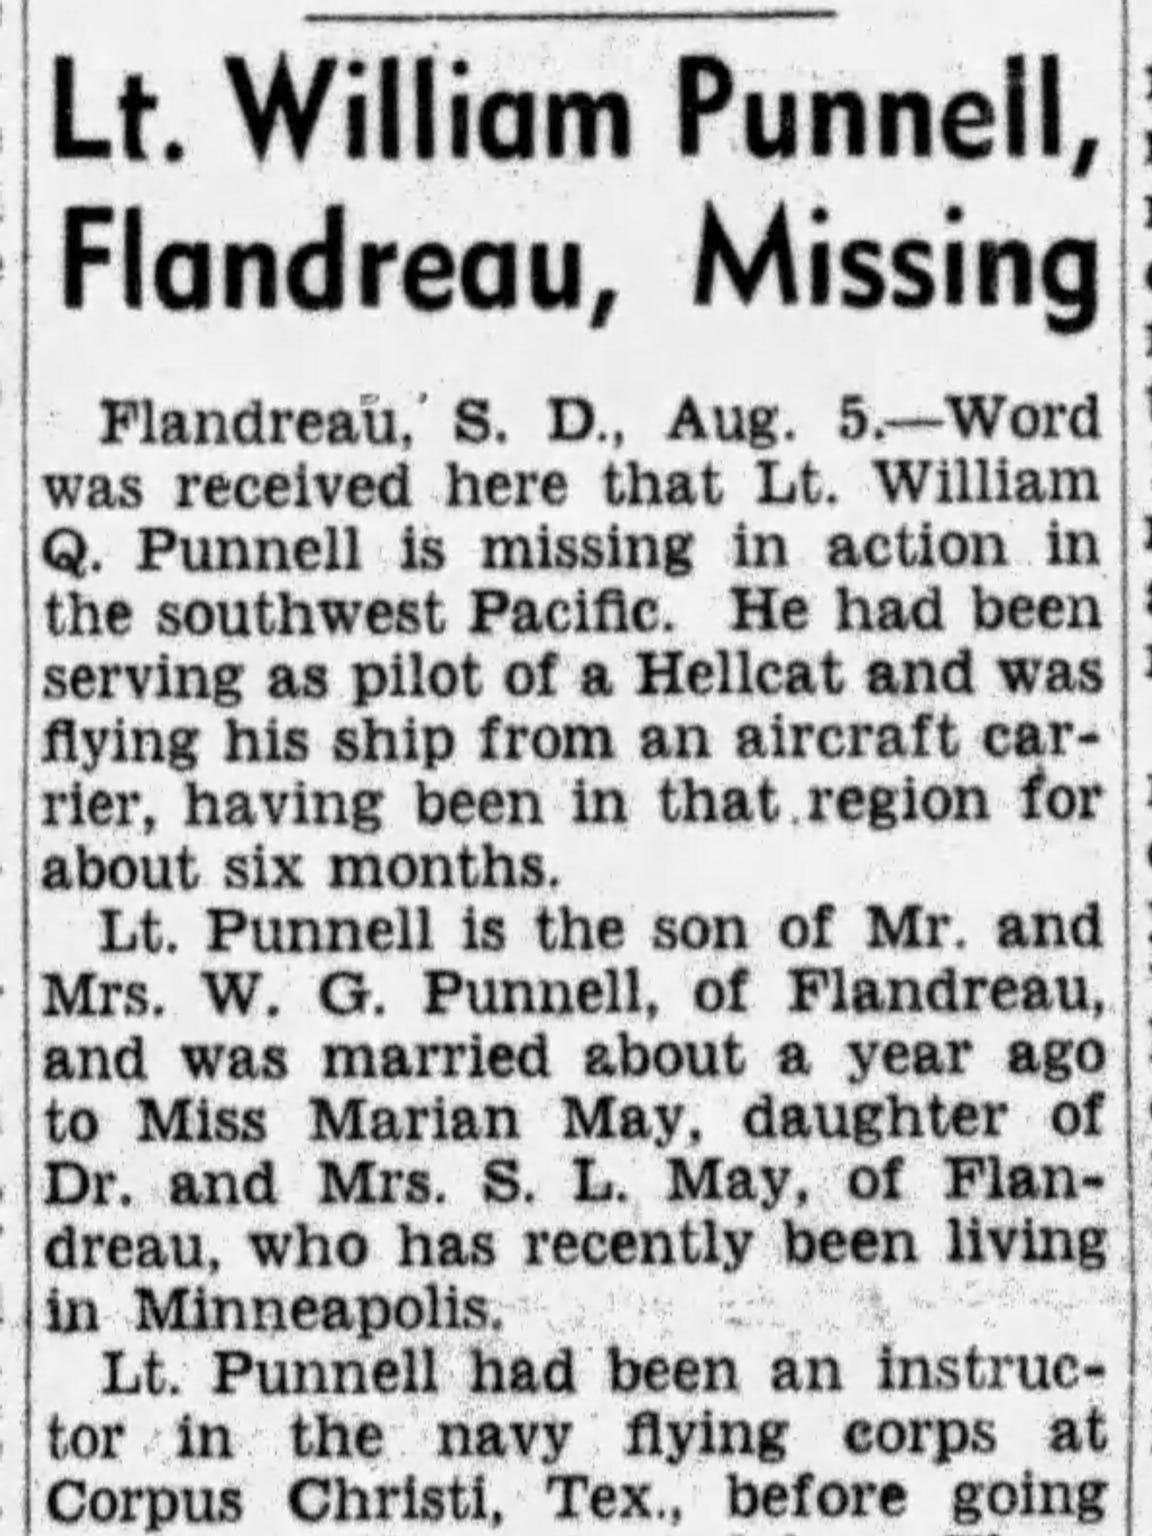 An Aug. 6, 1944 story in the Argus Leader conveyed